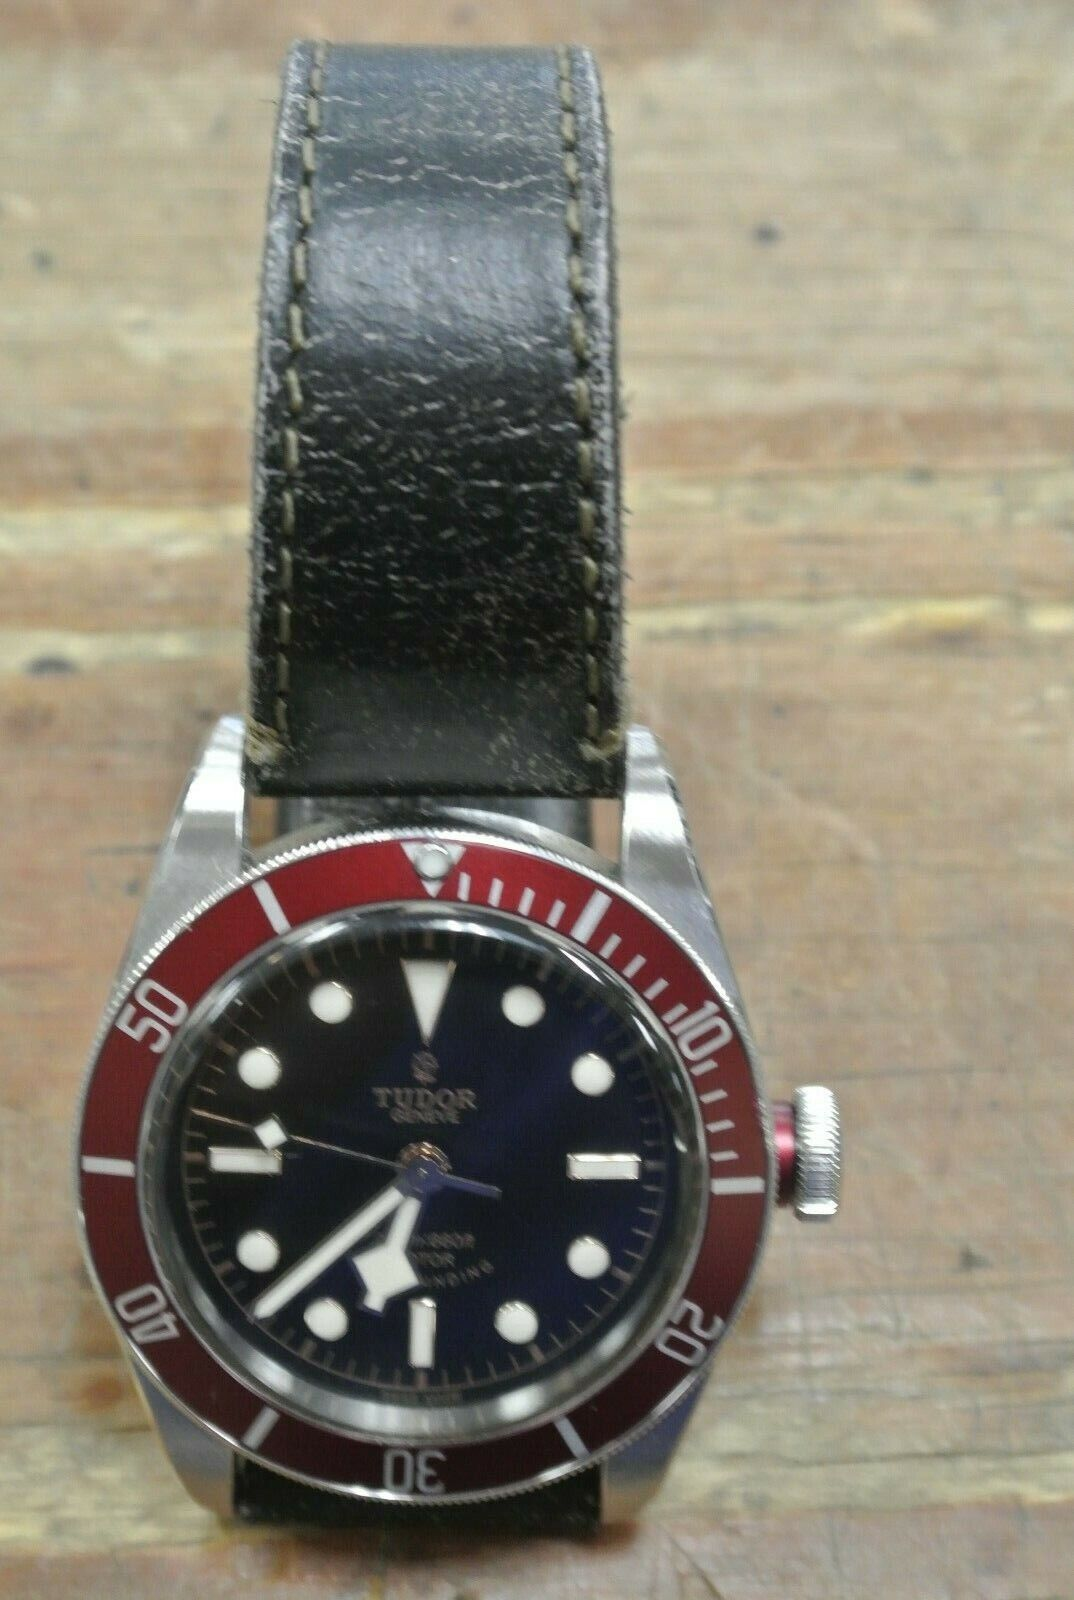 Tudor Black Bay Heritage Geneve 79220R Stainless Red Diver 200m Wrist Watch 41mm - watch picture 1